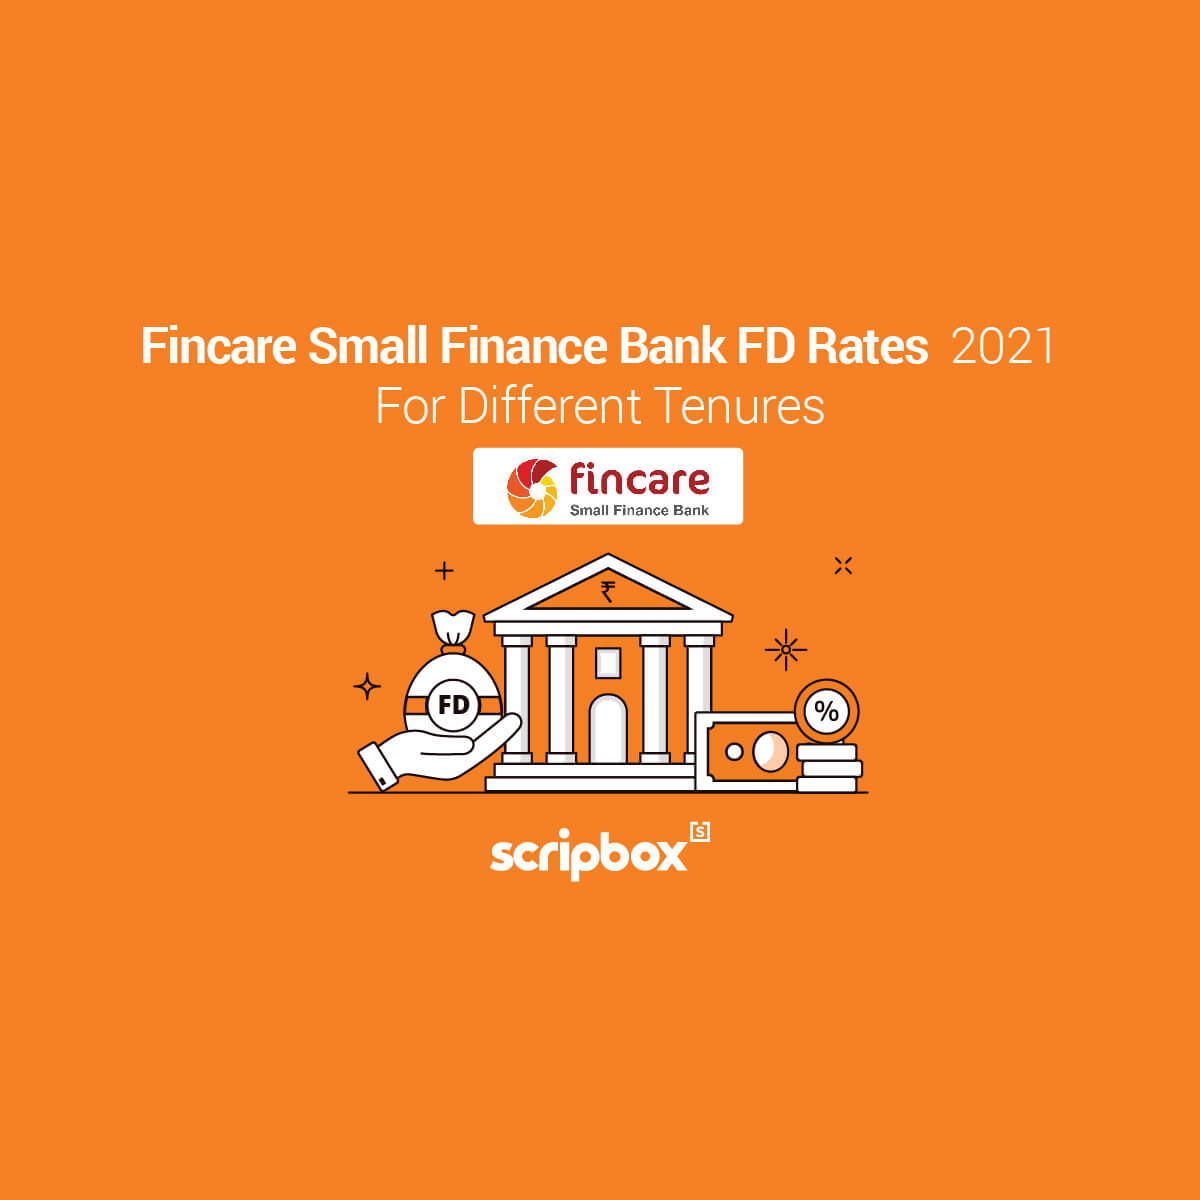 fincare small finance bank fd rates